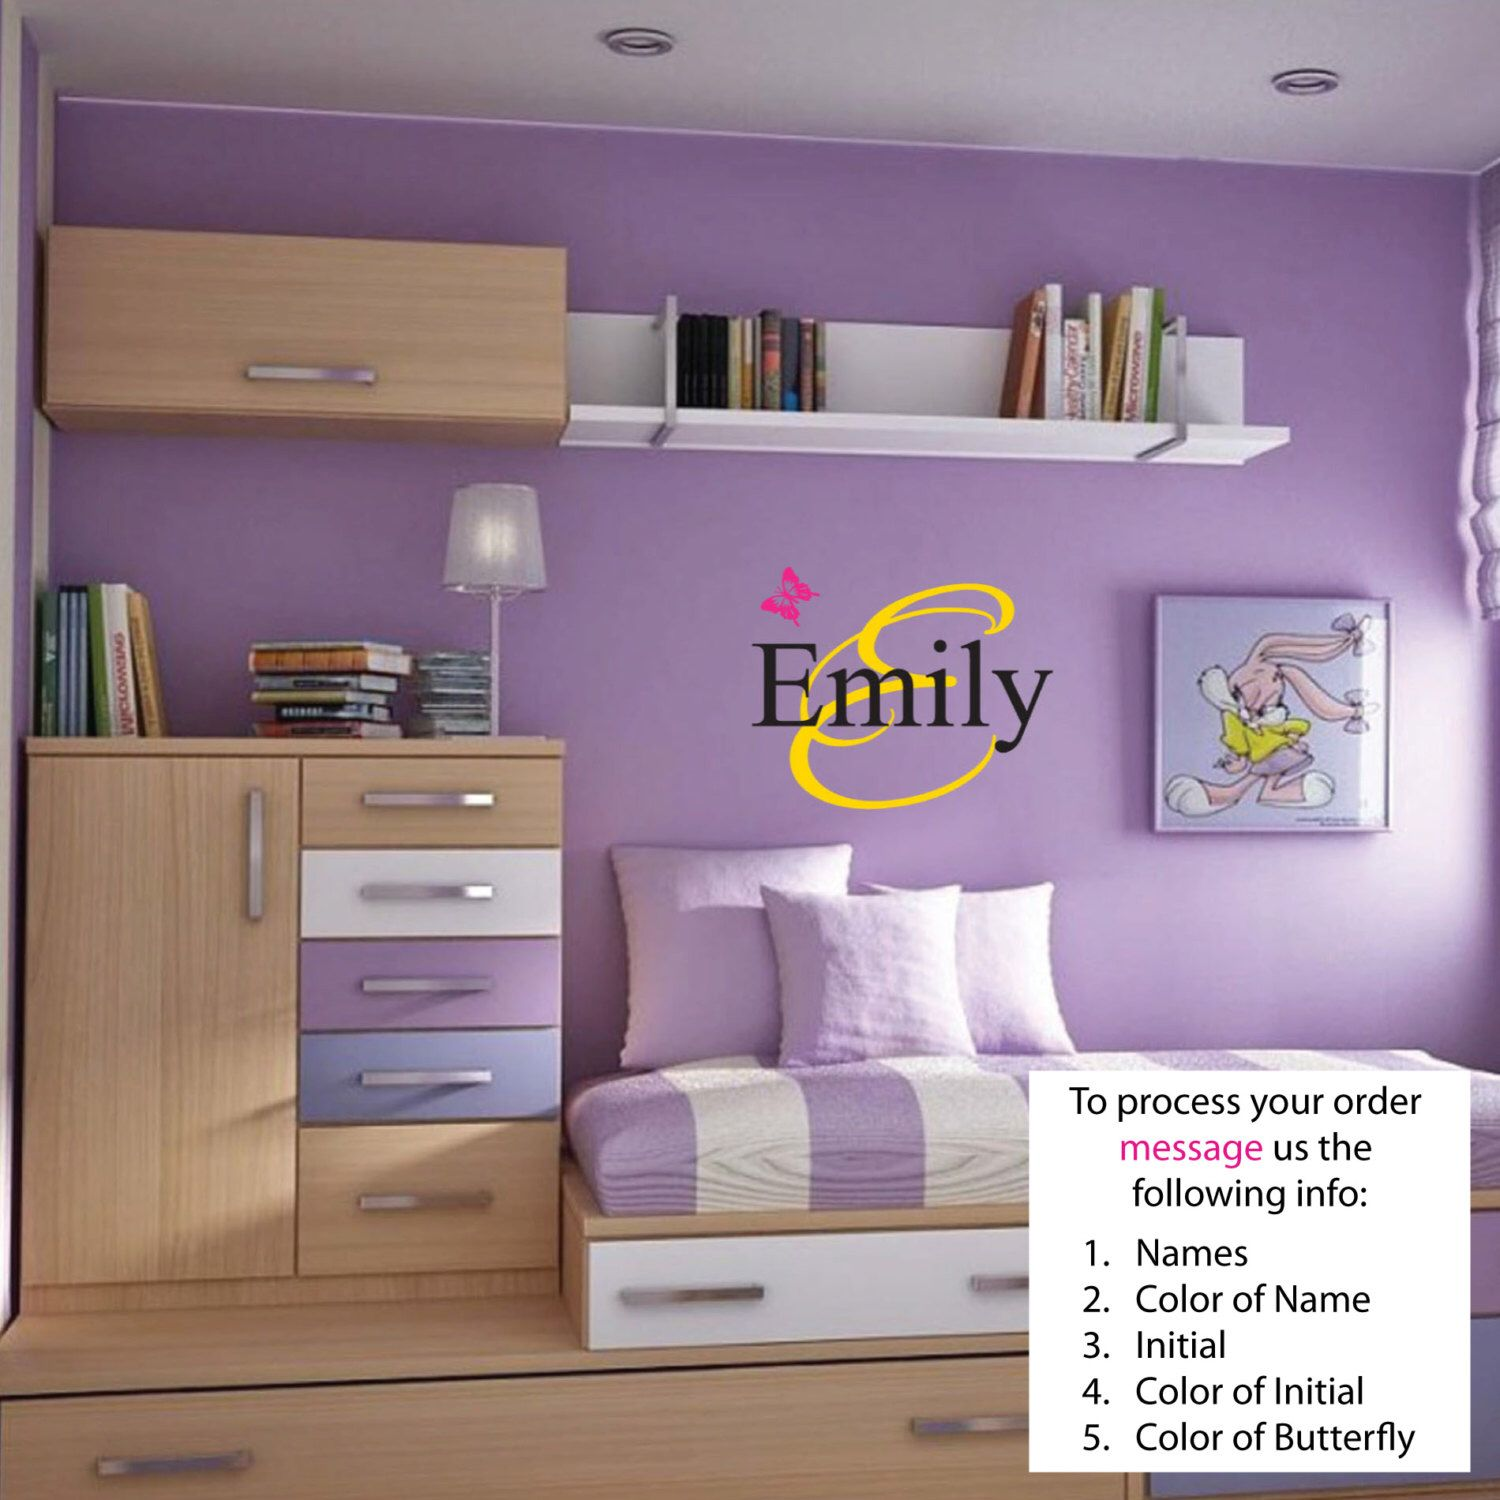 FREE SHIPPING Emily Name Wall Decal - Nursery Wall Decal - Teen Name Wall Decals - Personalized Wall Decals by BrittneysDesigns on Etsy https://www.etsy.com/listing/186287498/free-shipping-emily-name-wall-decal